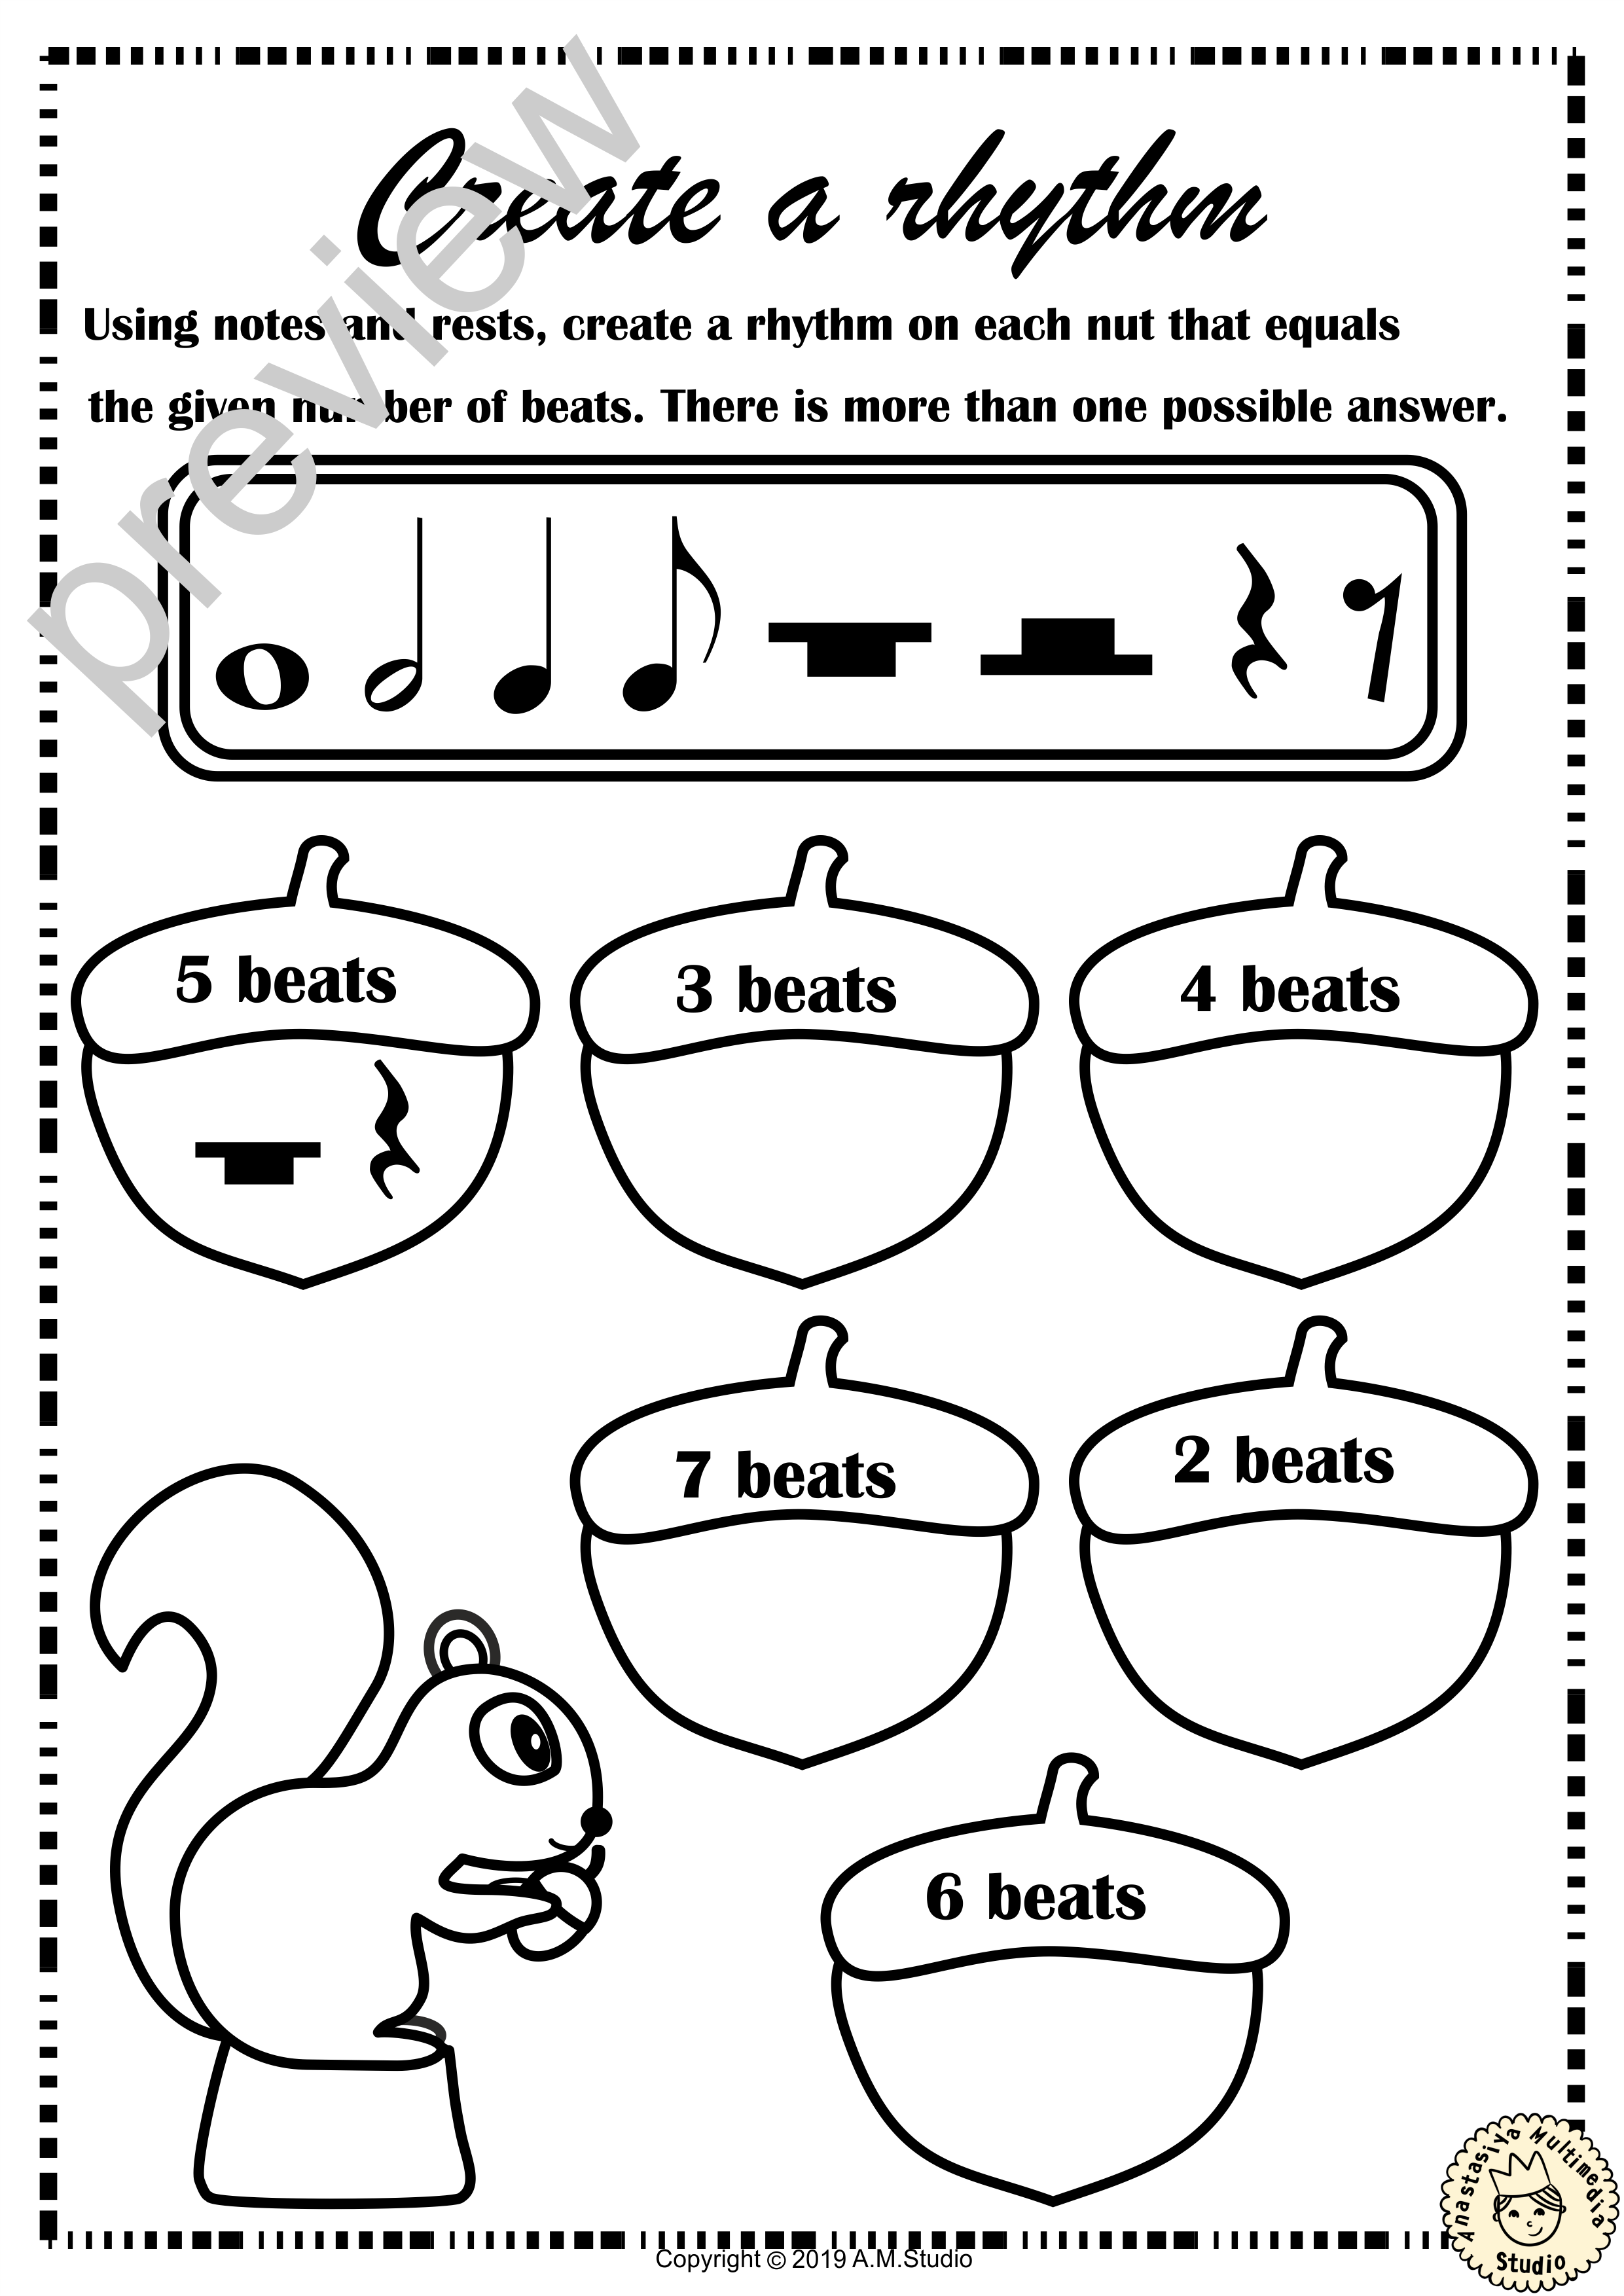 Fall Music Rhythm Worksheets For Beginners With Answers